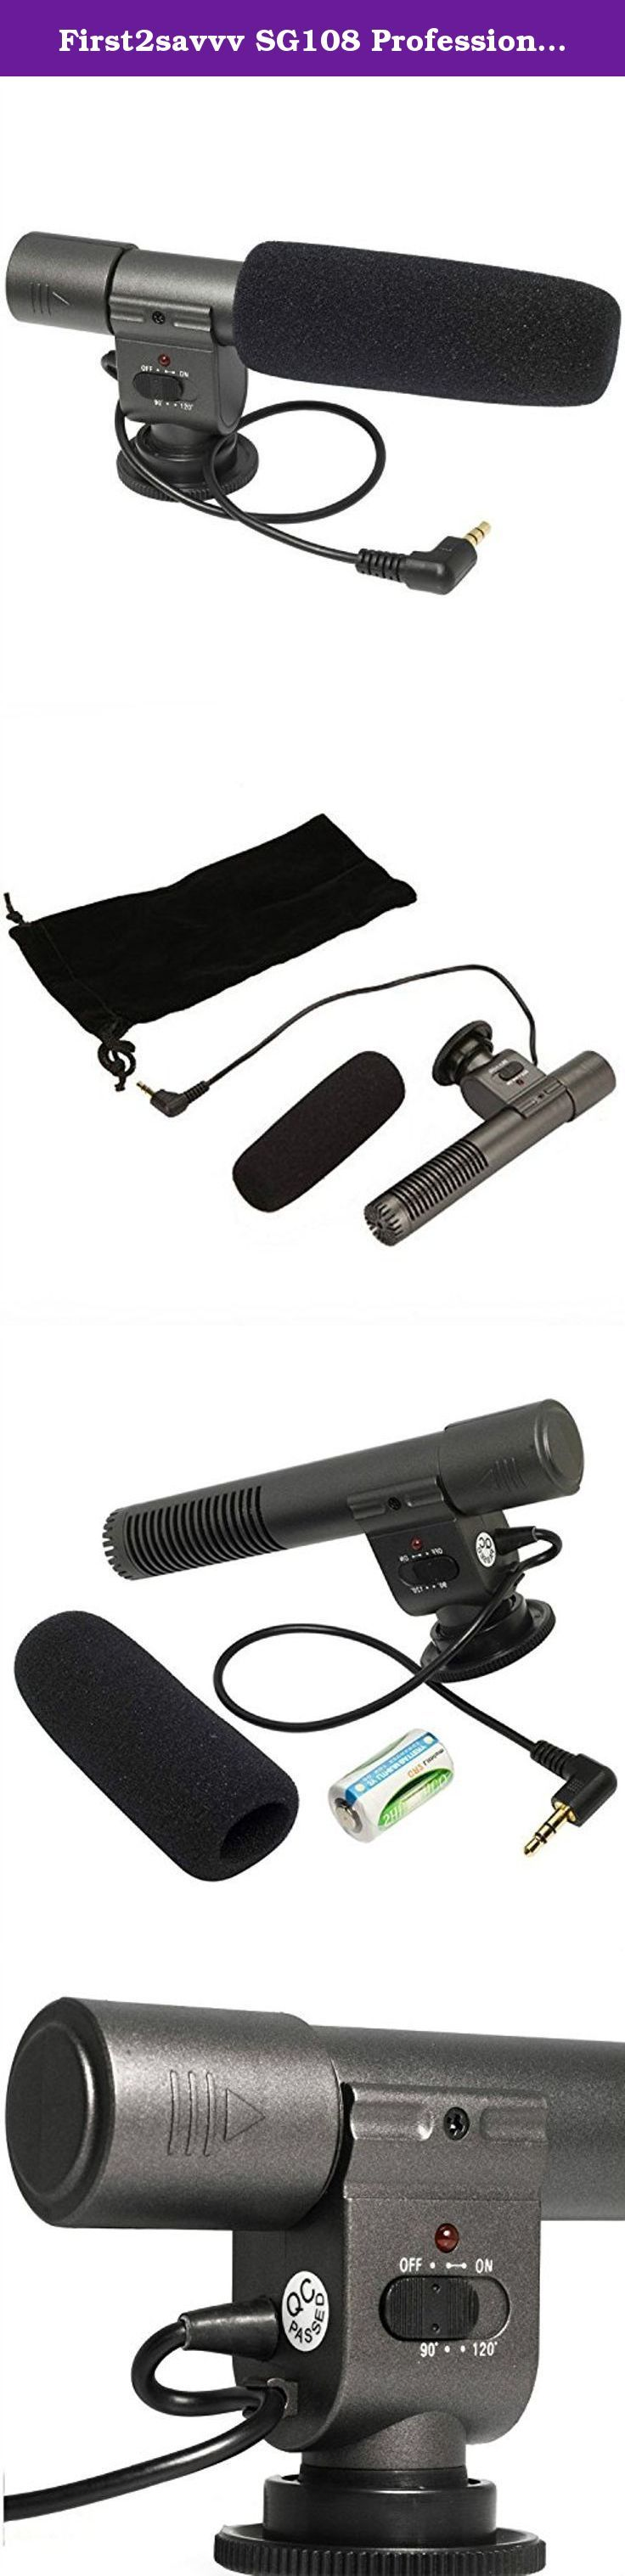 First2savvv SG108 Professional Interview condenser shotgun stereo microphone mic fits any DV& DSLR camera with microphone hole and path - FUJIFILM X-T1 Olympus SP-100E FUJIFILM X-T1 Globe-Trotter Kit FinePix S1 S9400W S9200 S8600 Panasonic LUMIX DMC-GH4EB DMC-GH4HEB DMC-LZ40 PENTAX K-r K-30 K-5 II K-5 Iis K-500 K-50 K-3 X5 645D 645 Z K-S1 Canon PowerShot SX530 HS EOS 1100D EOS 550D EOS 600D EOS 60D EOS 7D EOS 5D Mark II EOS-1D X EOS-1D. This bundle listing includes:1 x MIC-108-01…